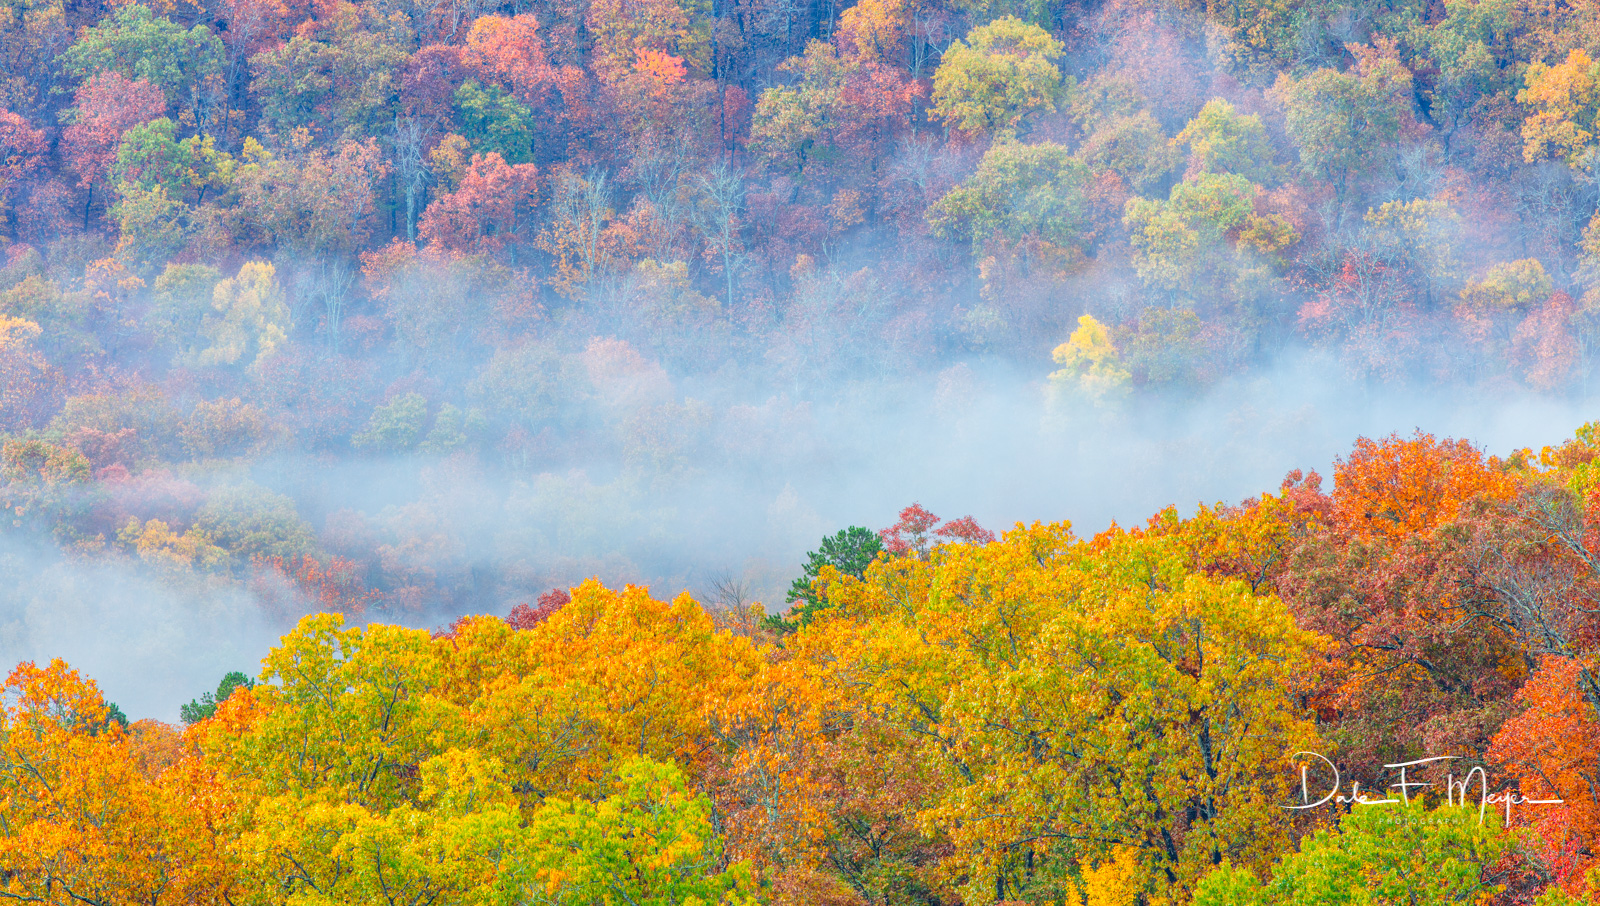 Early Morning Light., Fall 2018, Misty Fog, Ozark national forest., photo